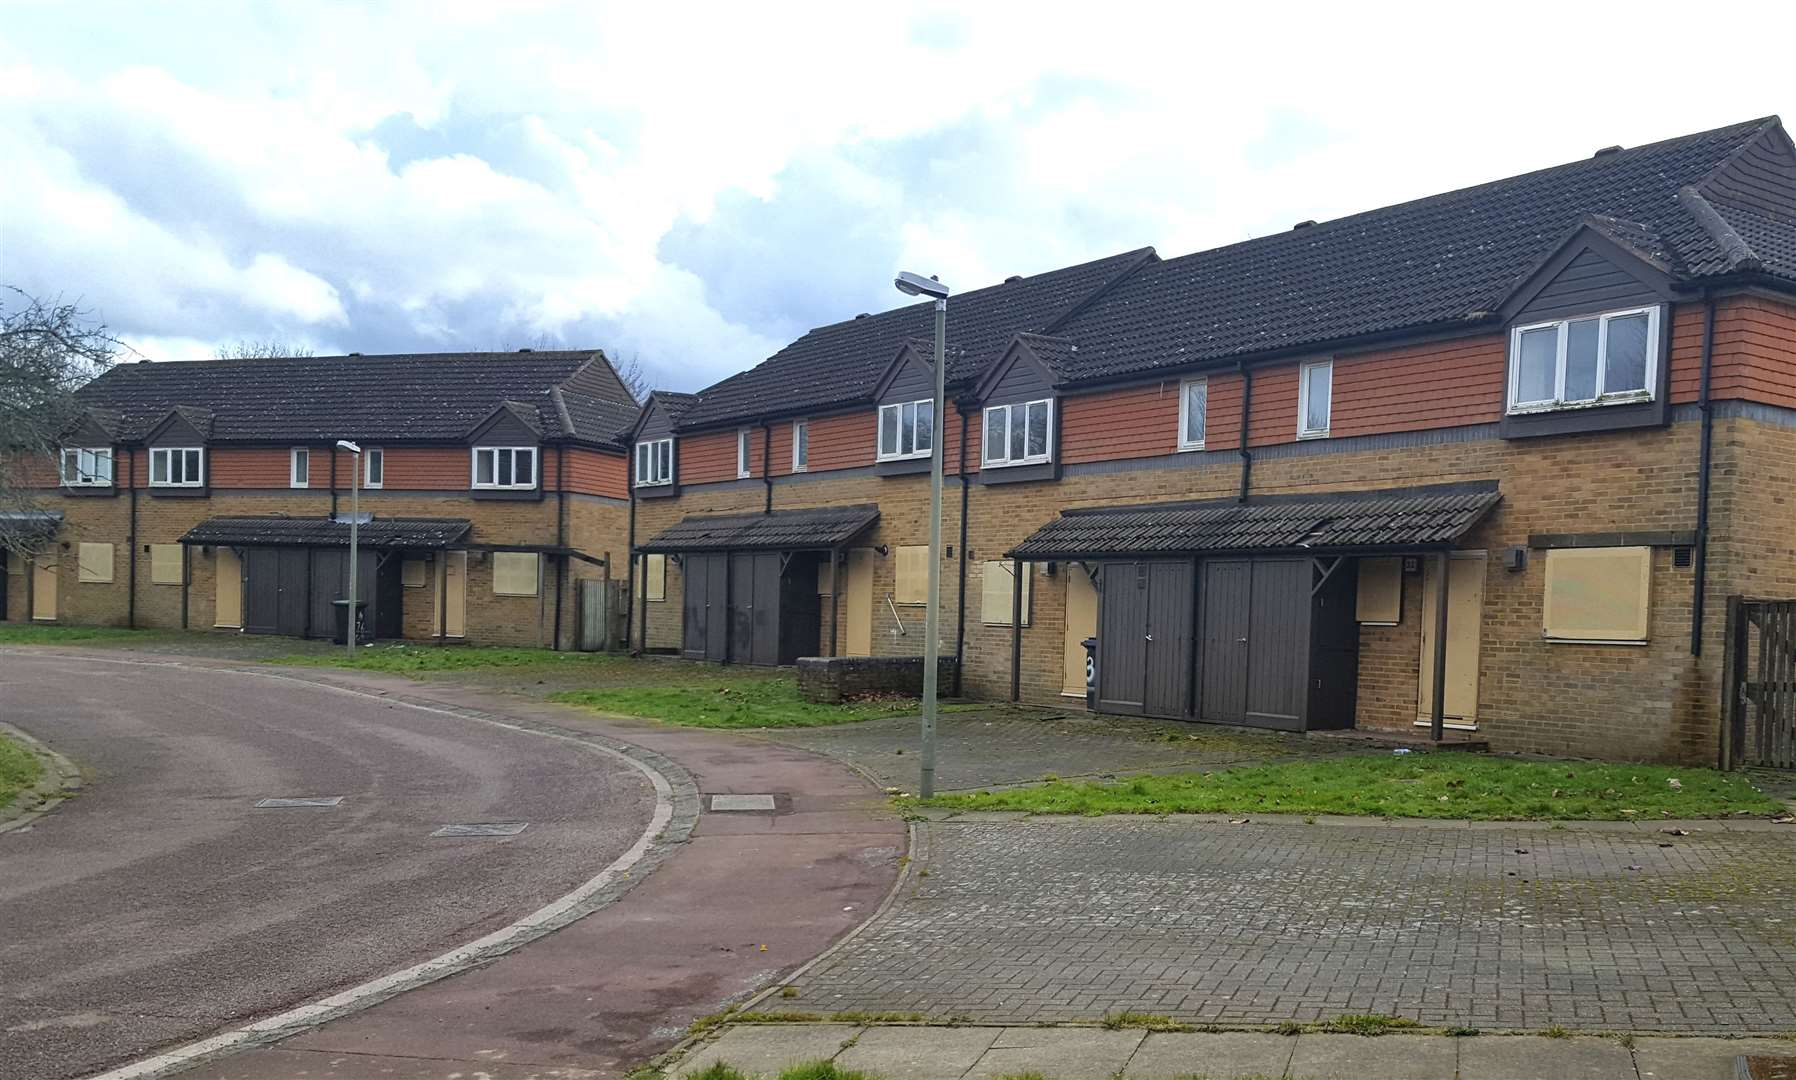 The last batch of redundant army homes at the former Howe Barracks will go to London families